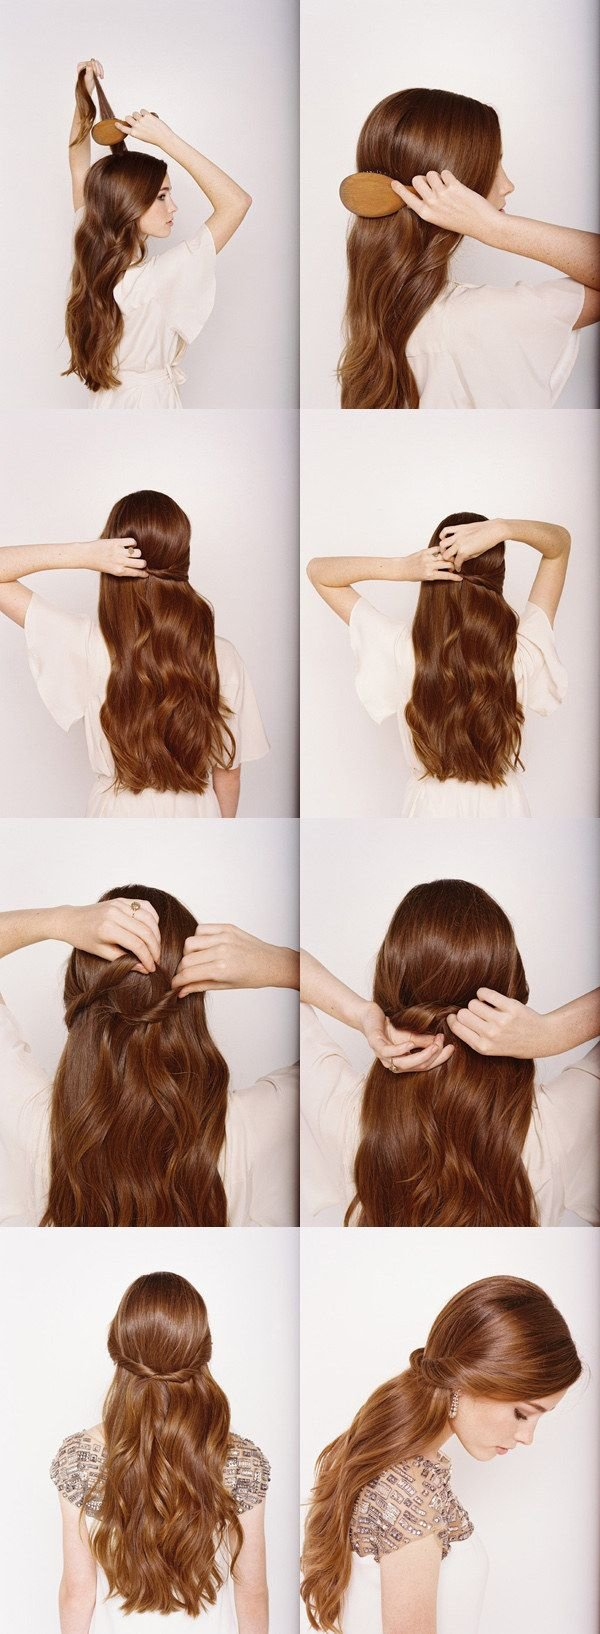 hair,brown,clothing,hairstyle,fashion accessory,